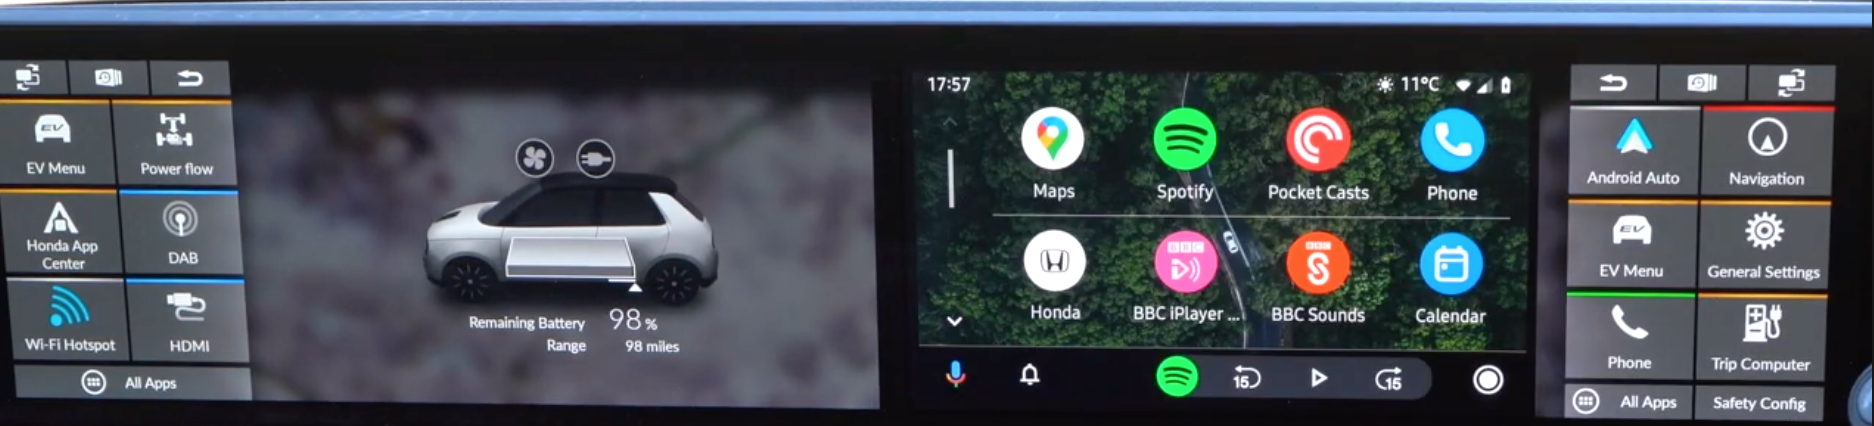 Charging status on the left screen and android auto interface on the right